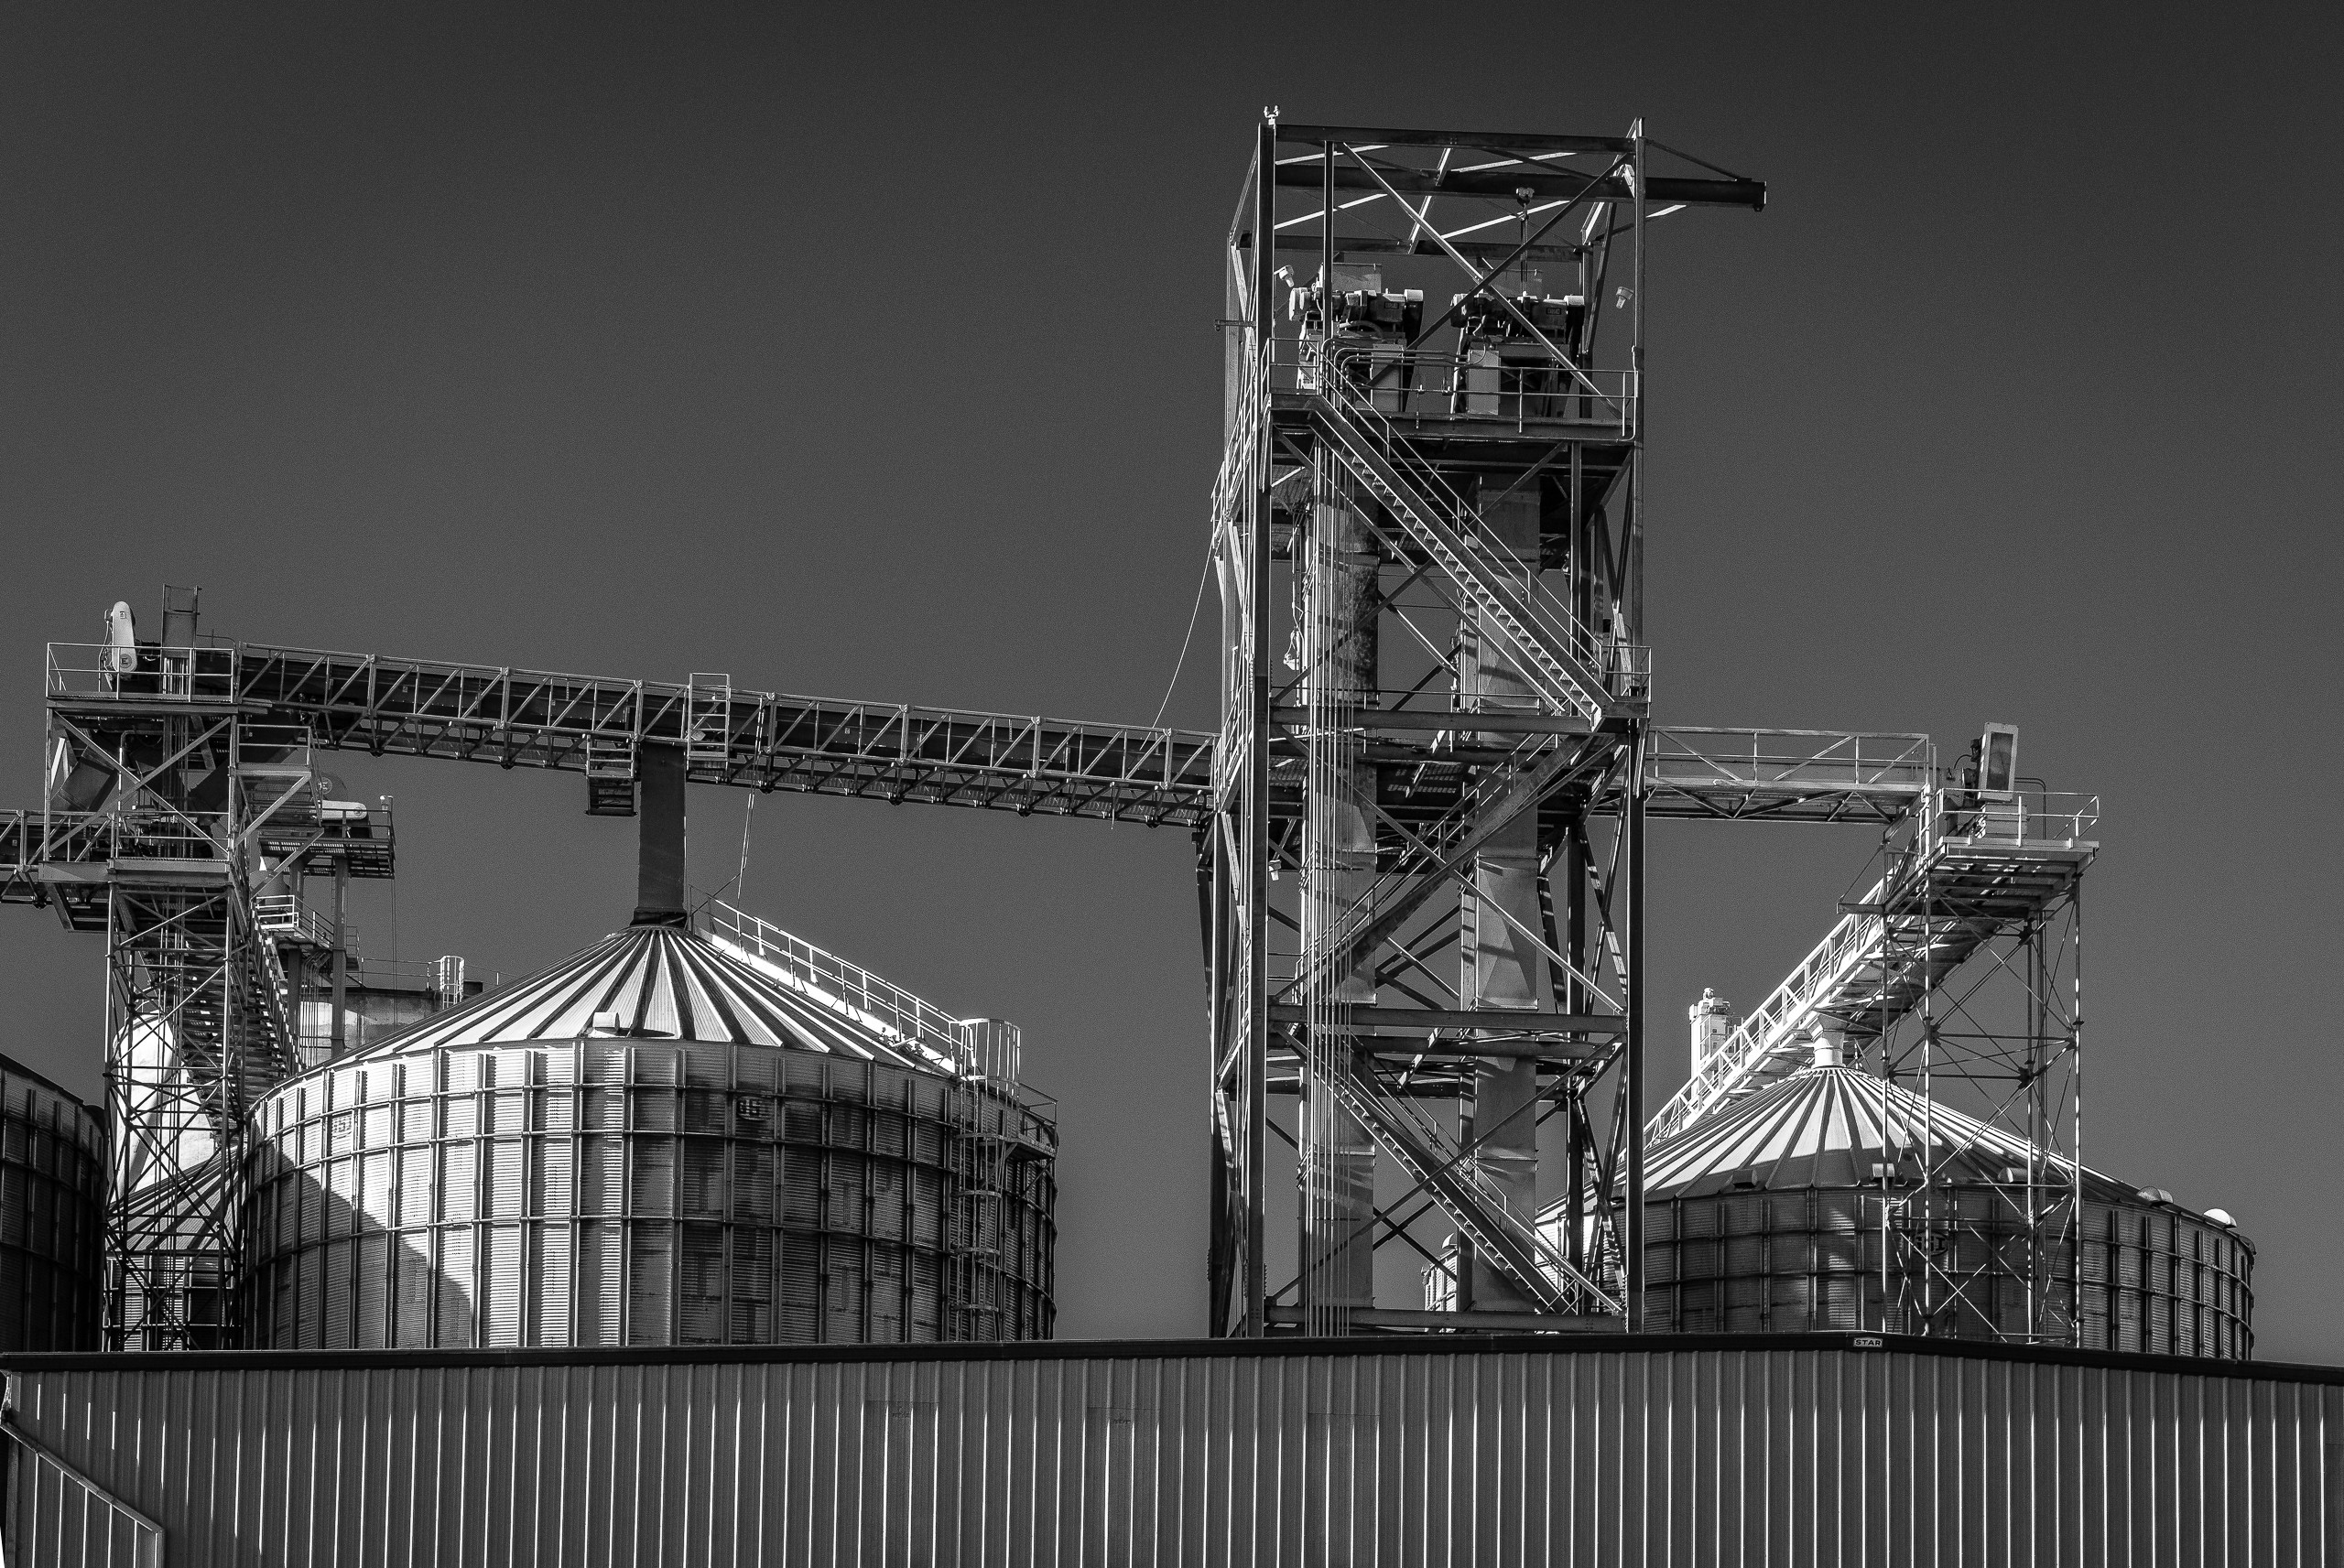 Catwalks| Associated Feed/Hughson, CA